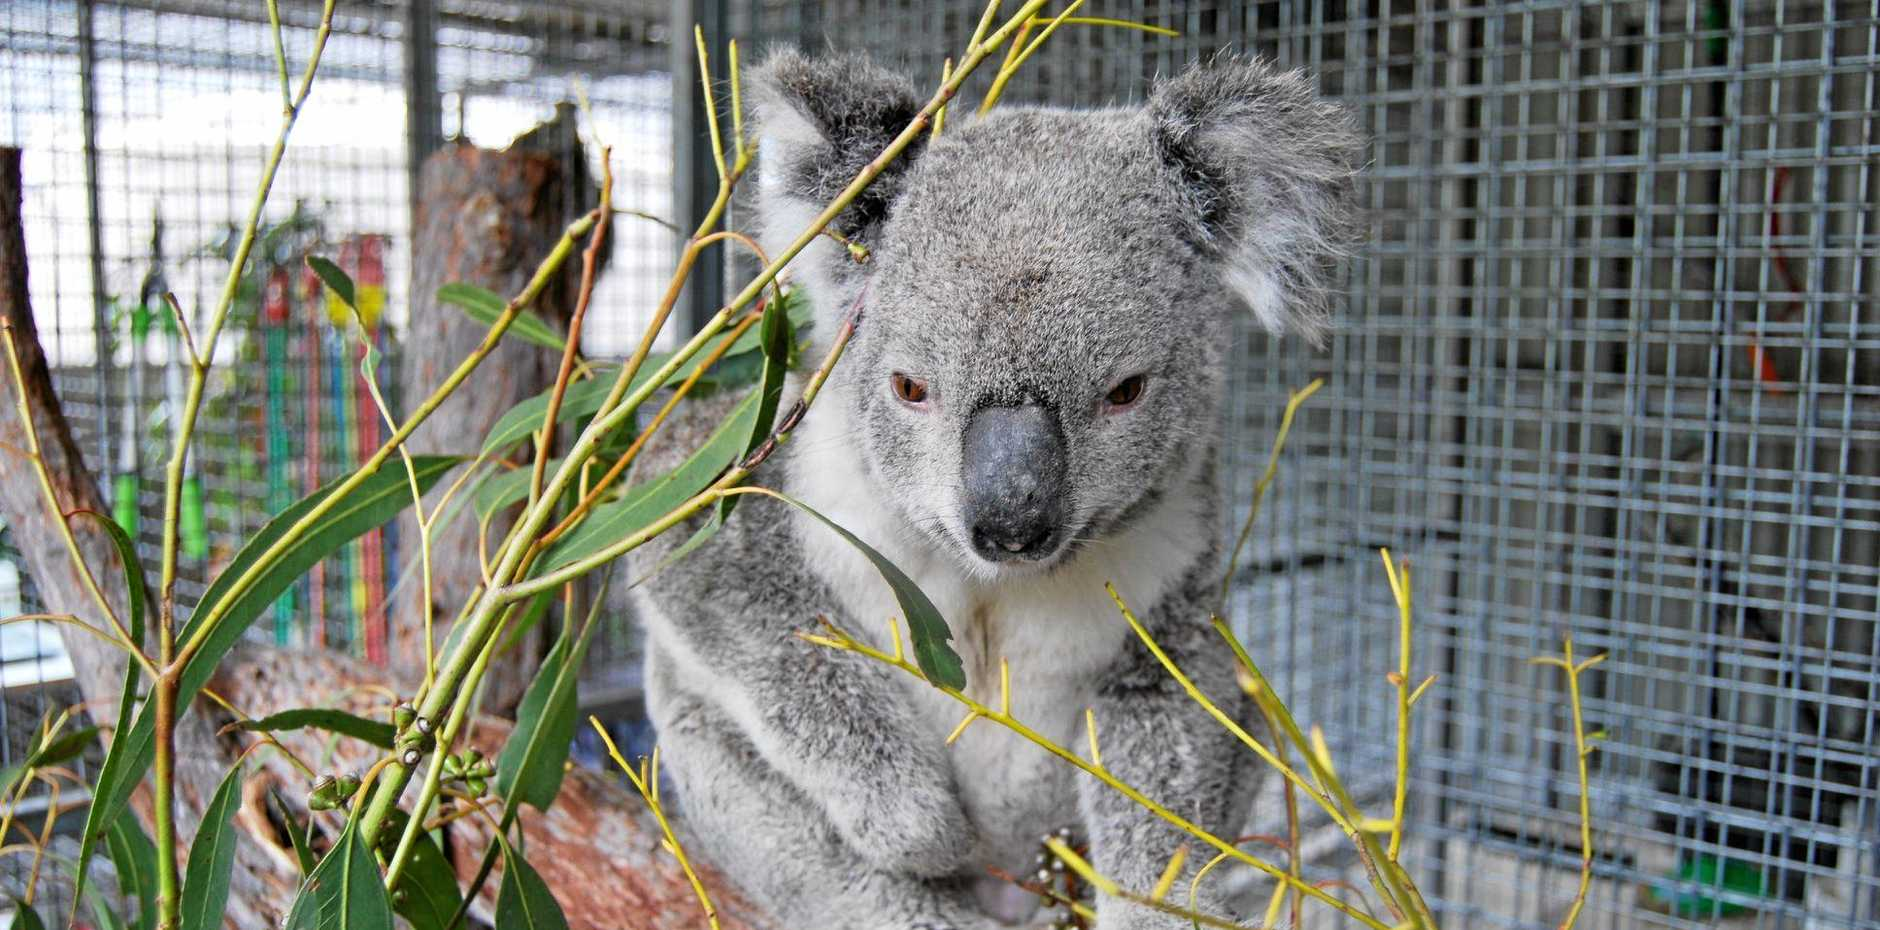 BACK TO BUSH: Granite Belt Wildlife Carers helped rescue this koala in Stanthorpe and set it free.